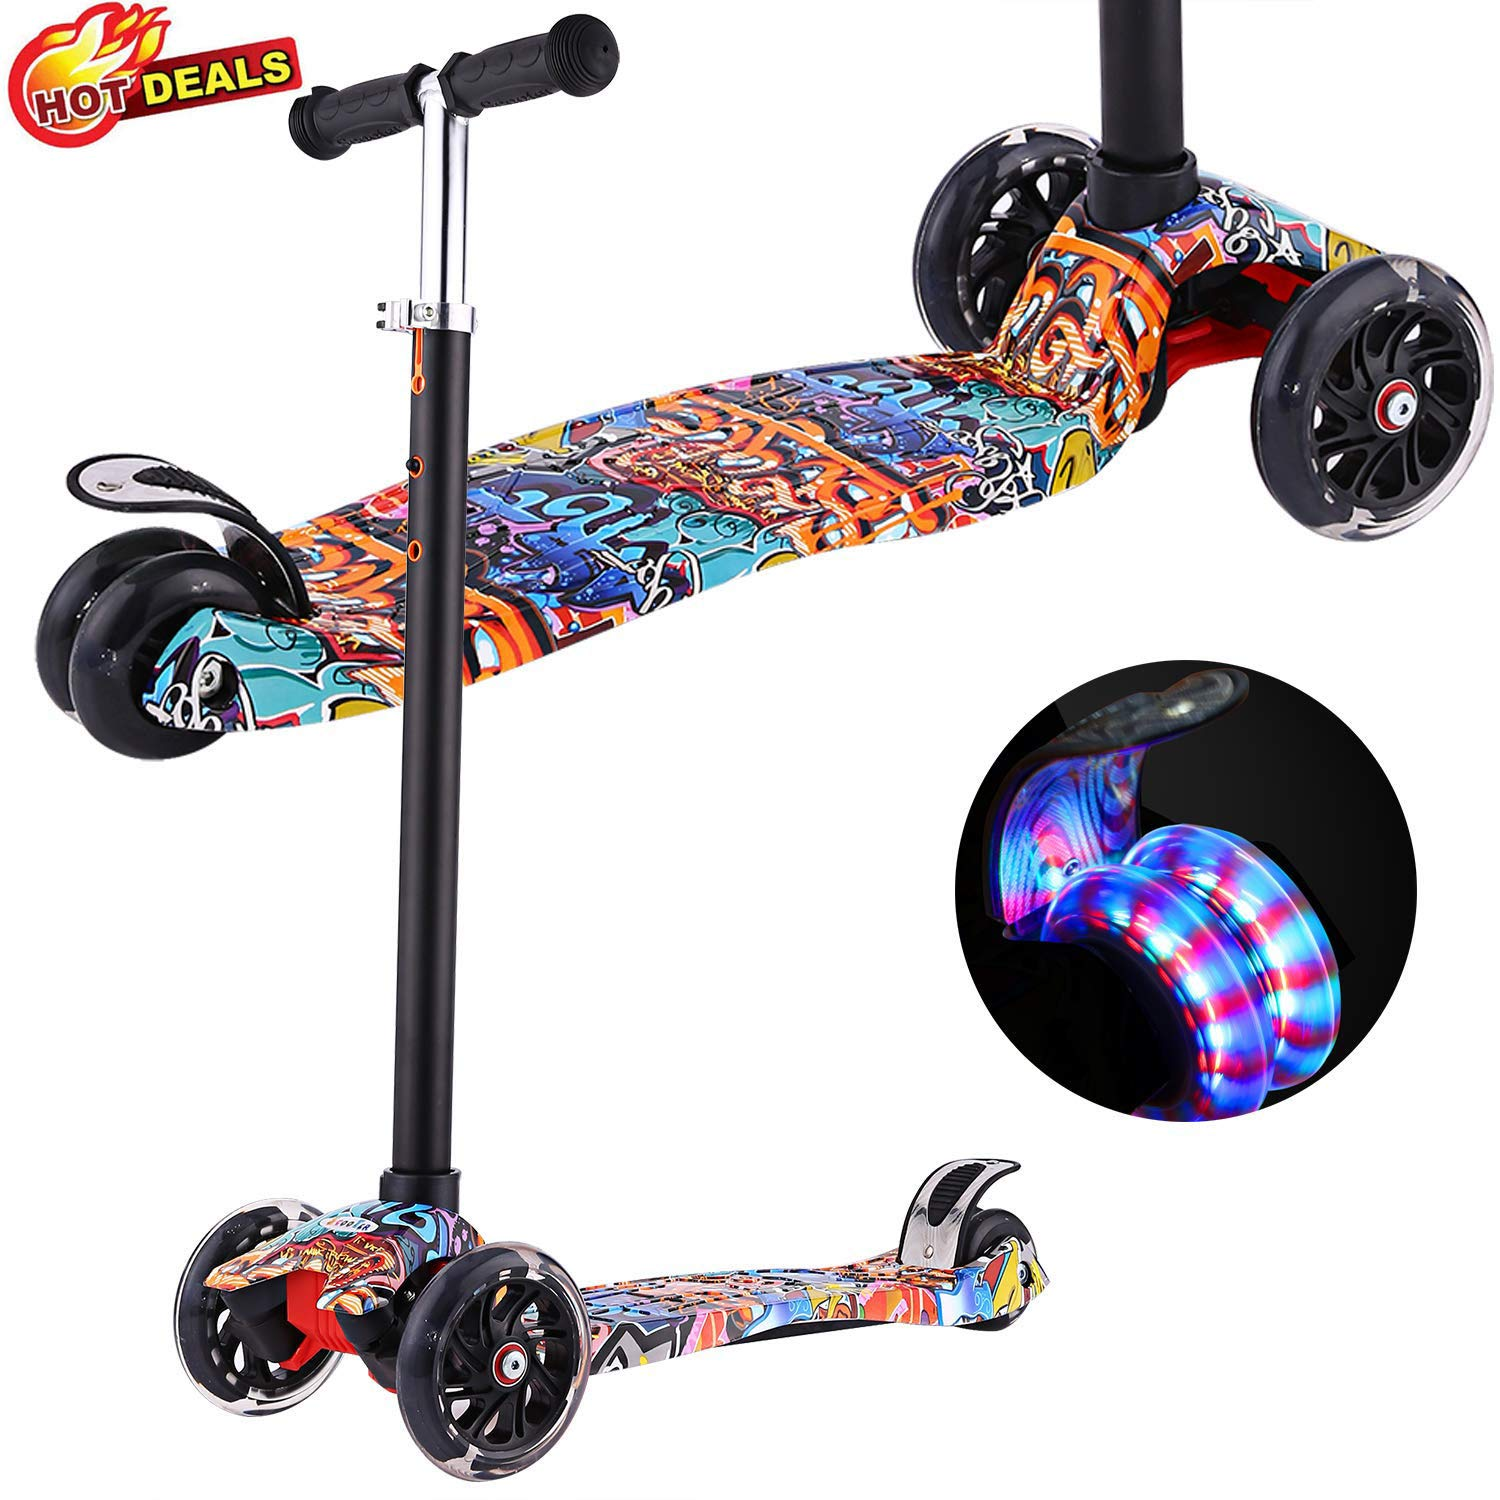 Scooters for Kids, Kick Scooter with Adjustable Height | Extra-Wide Deck | PU Flashing 3-Wheels, Cool Scooter for Kid from 2 to 14 Year-Old (Re Street Dance Doodle) by Aceshin